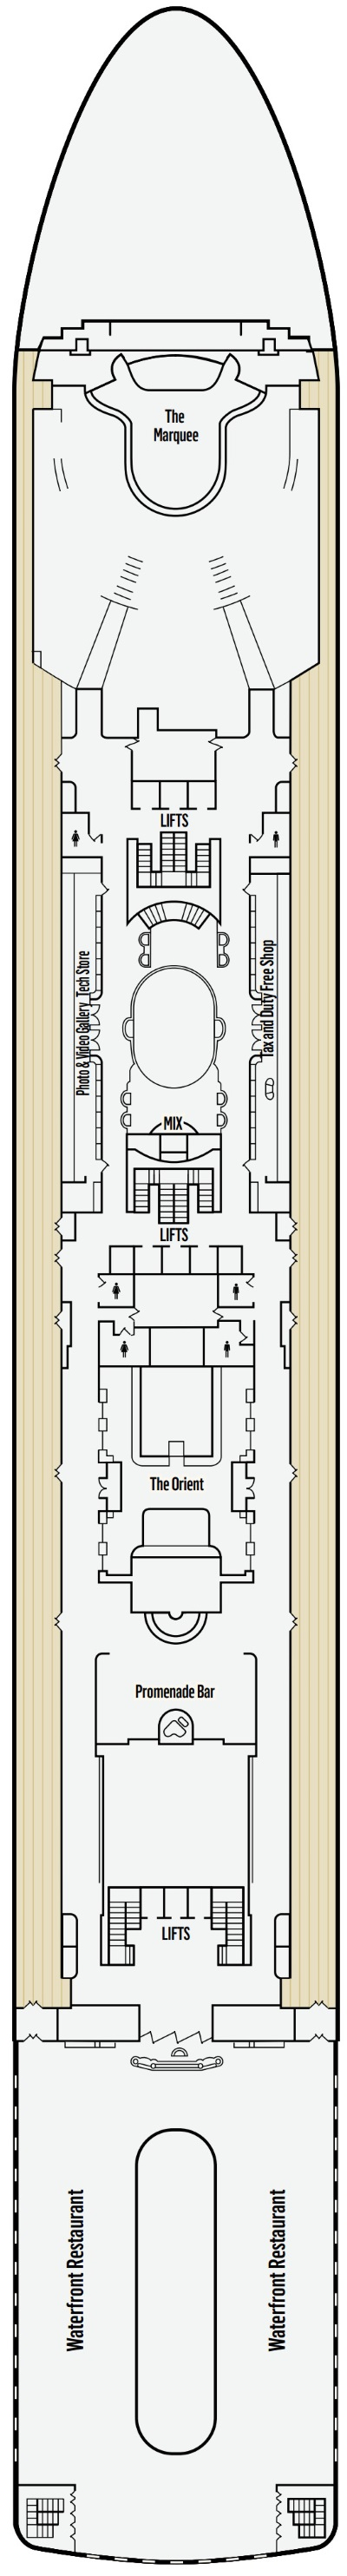 P&O - Pacific Dawn Deck 7 layout